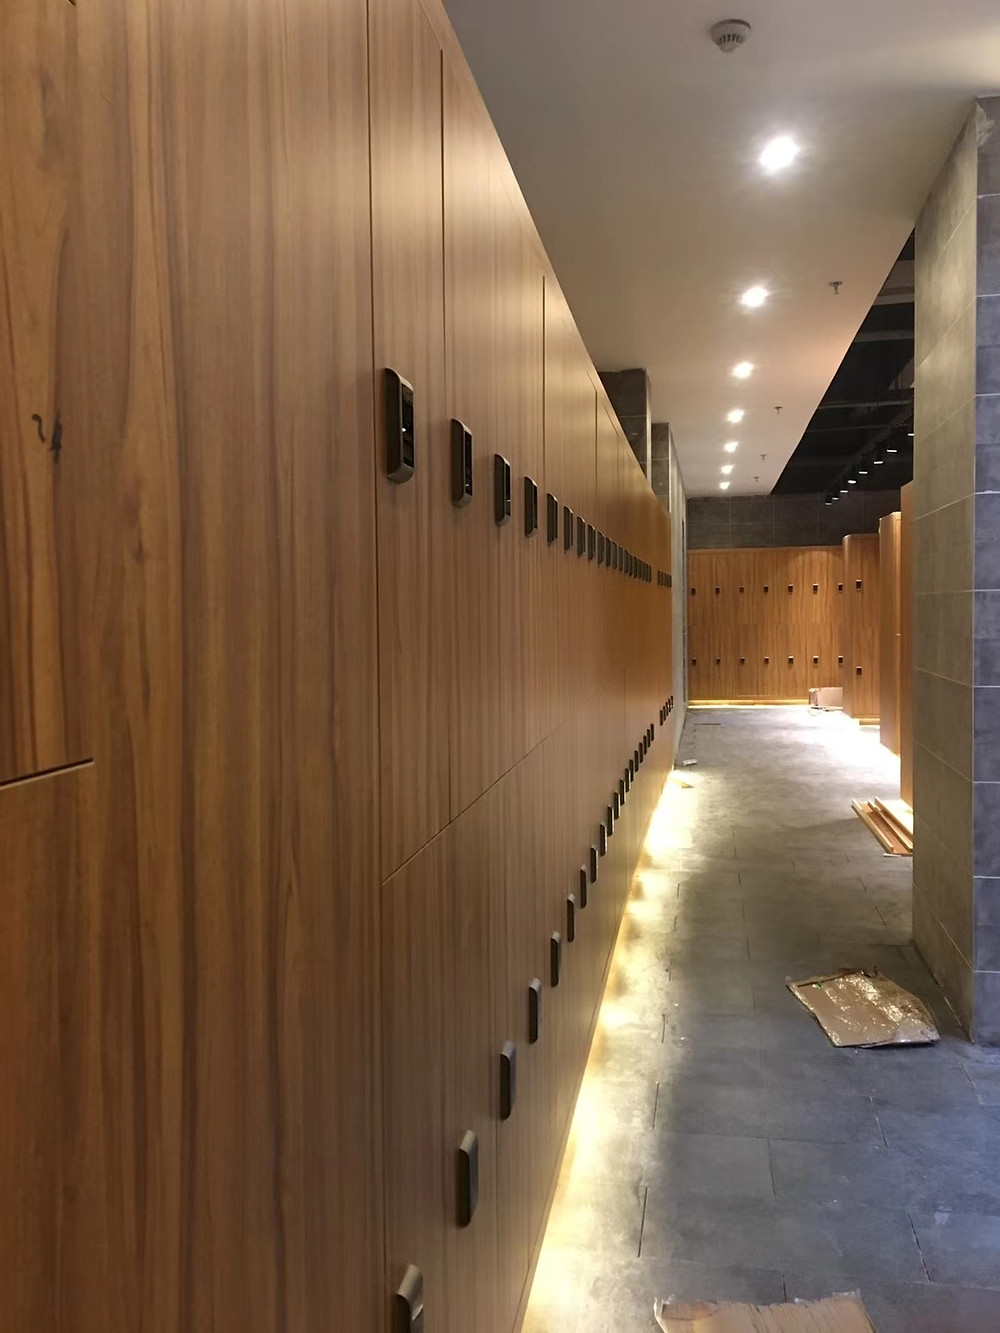 How to design the size for the wood lockers?